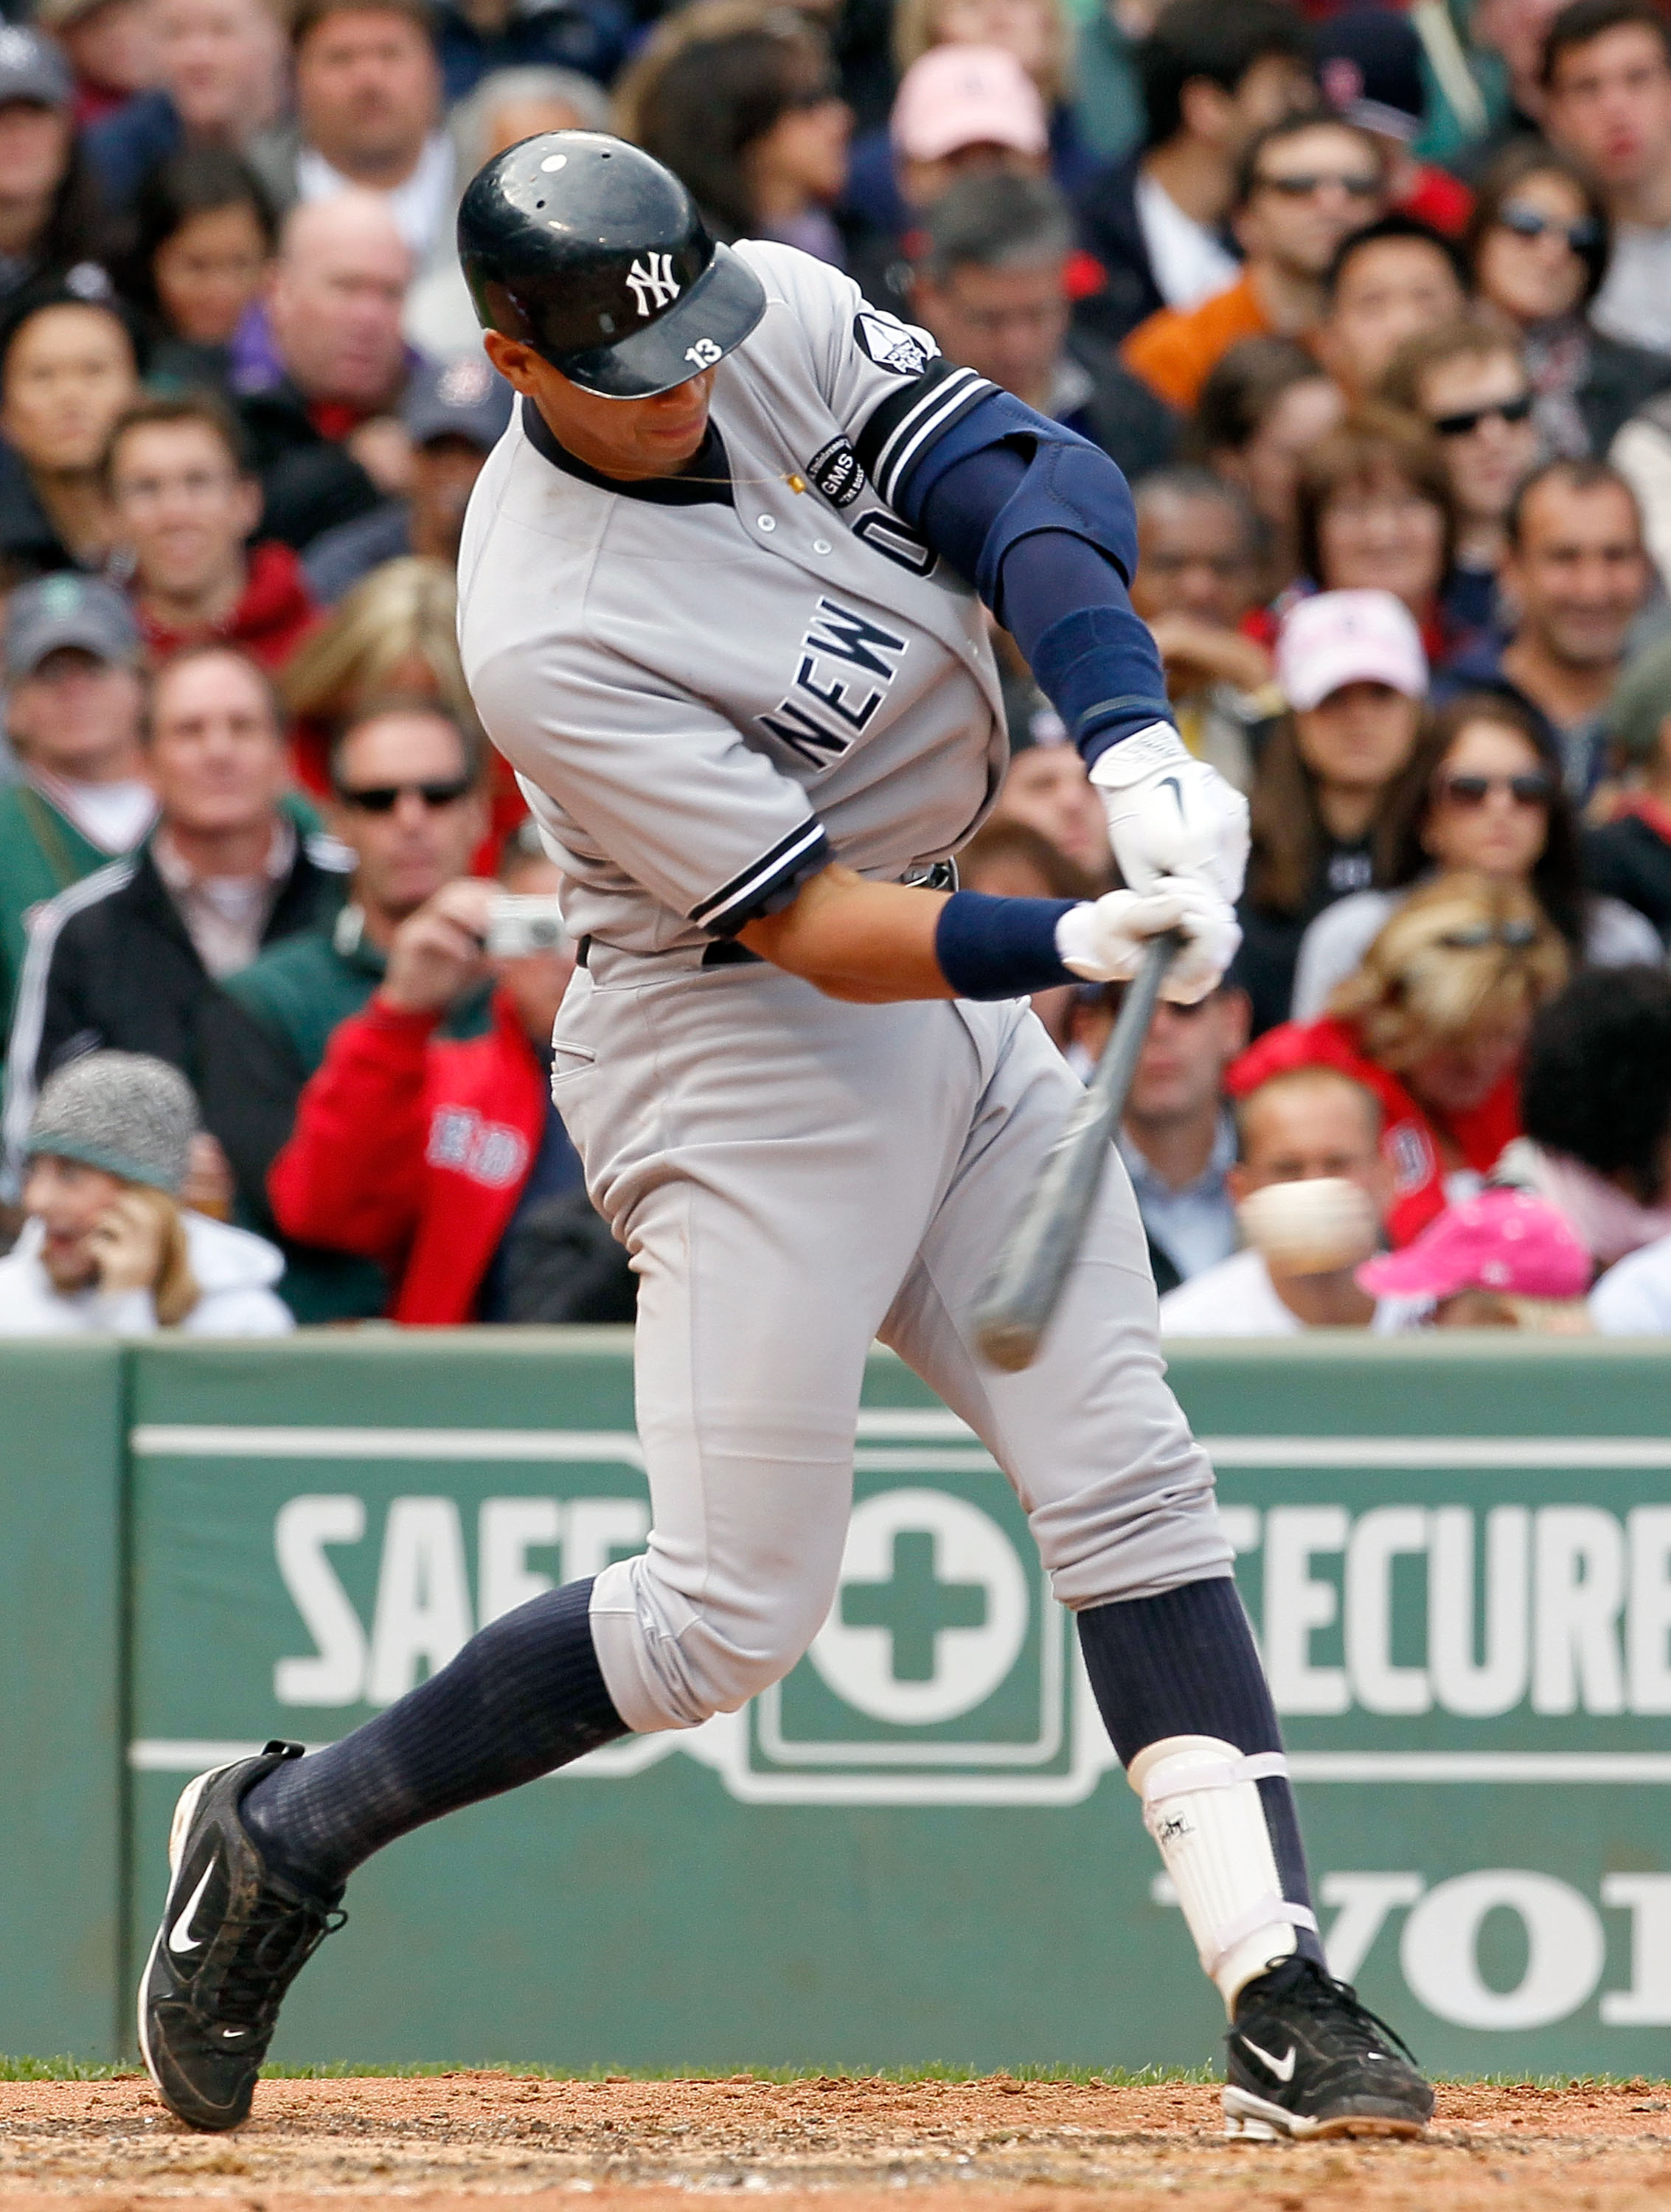 BOSTON - OCTOBER 3:  Alex Rodriguez #13 of the New York Yankees singles to knock in a run in the third inning against the Boston Red Sox at Fenway Park October 3, 2010 in Boston, Massachusetts. (Photo by Jim Rogash/Getty Images)